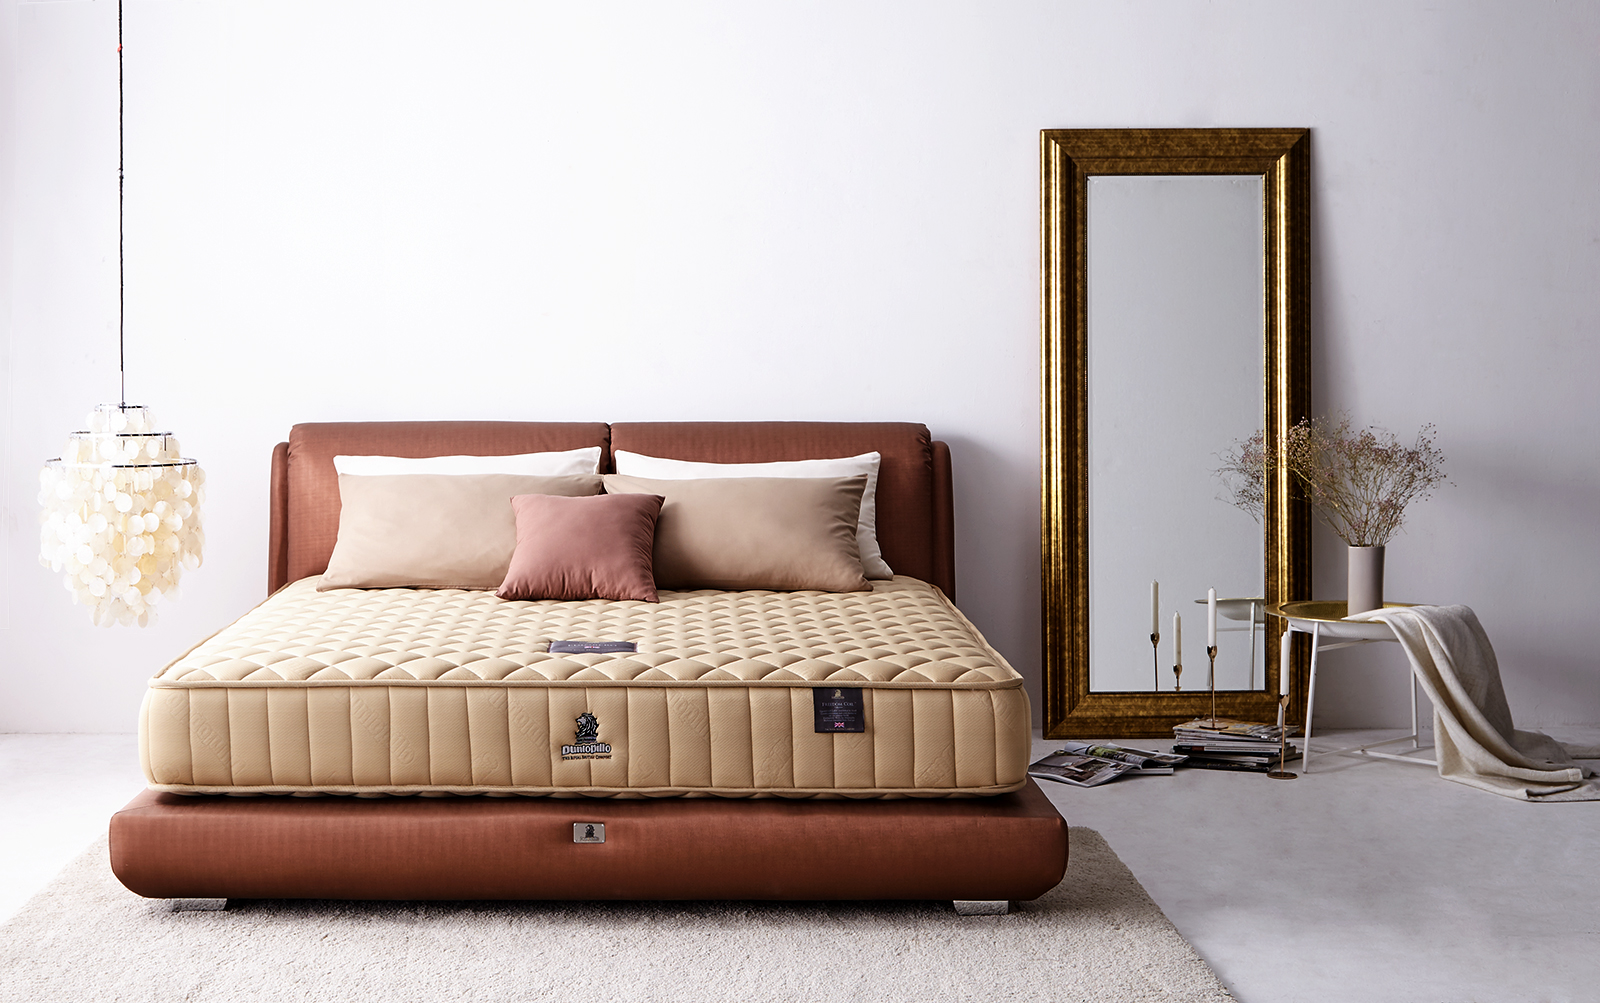 Dunlopillo Mattress Edinburgh